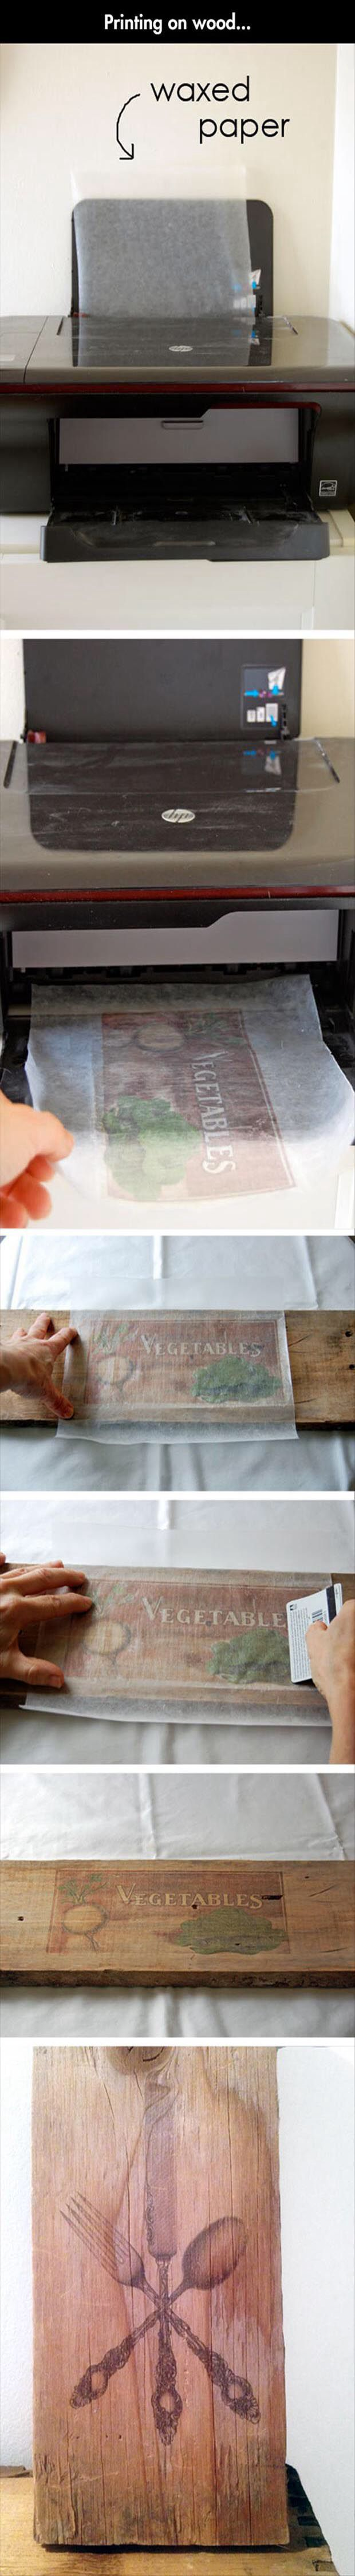 17 best images about crafty paper crafts on pinterest for Printer transfer paper for wood